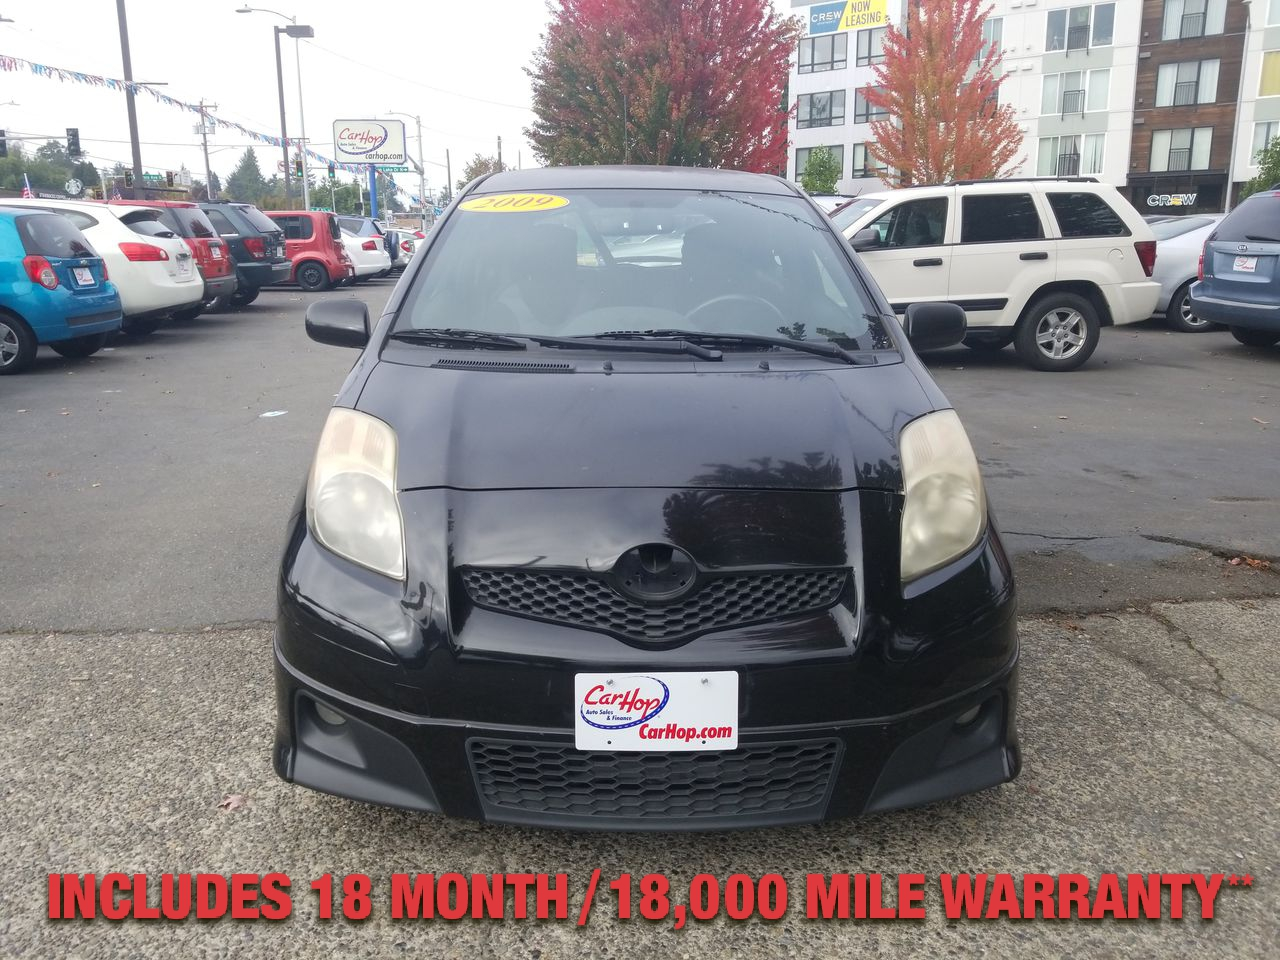 Pre-Owned 2009 TOYOTA YARIS Hatchback